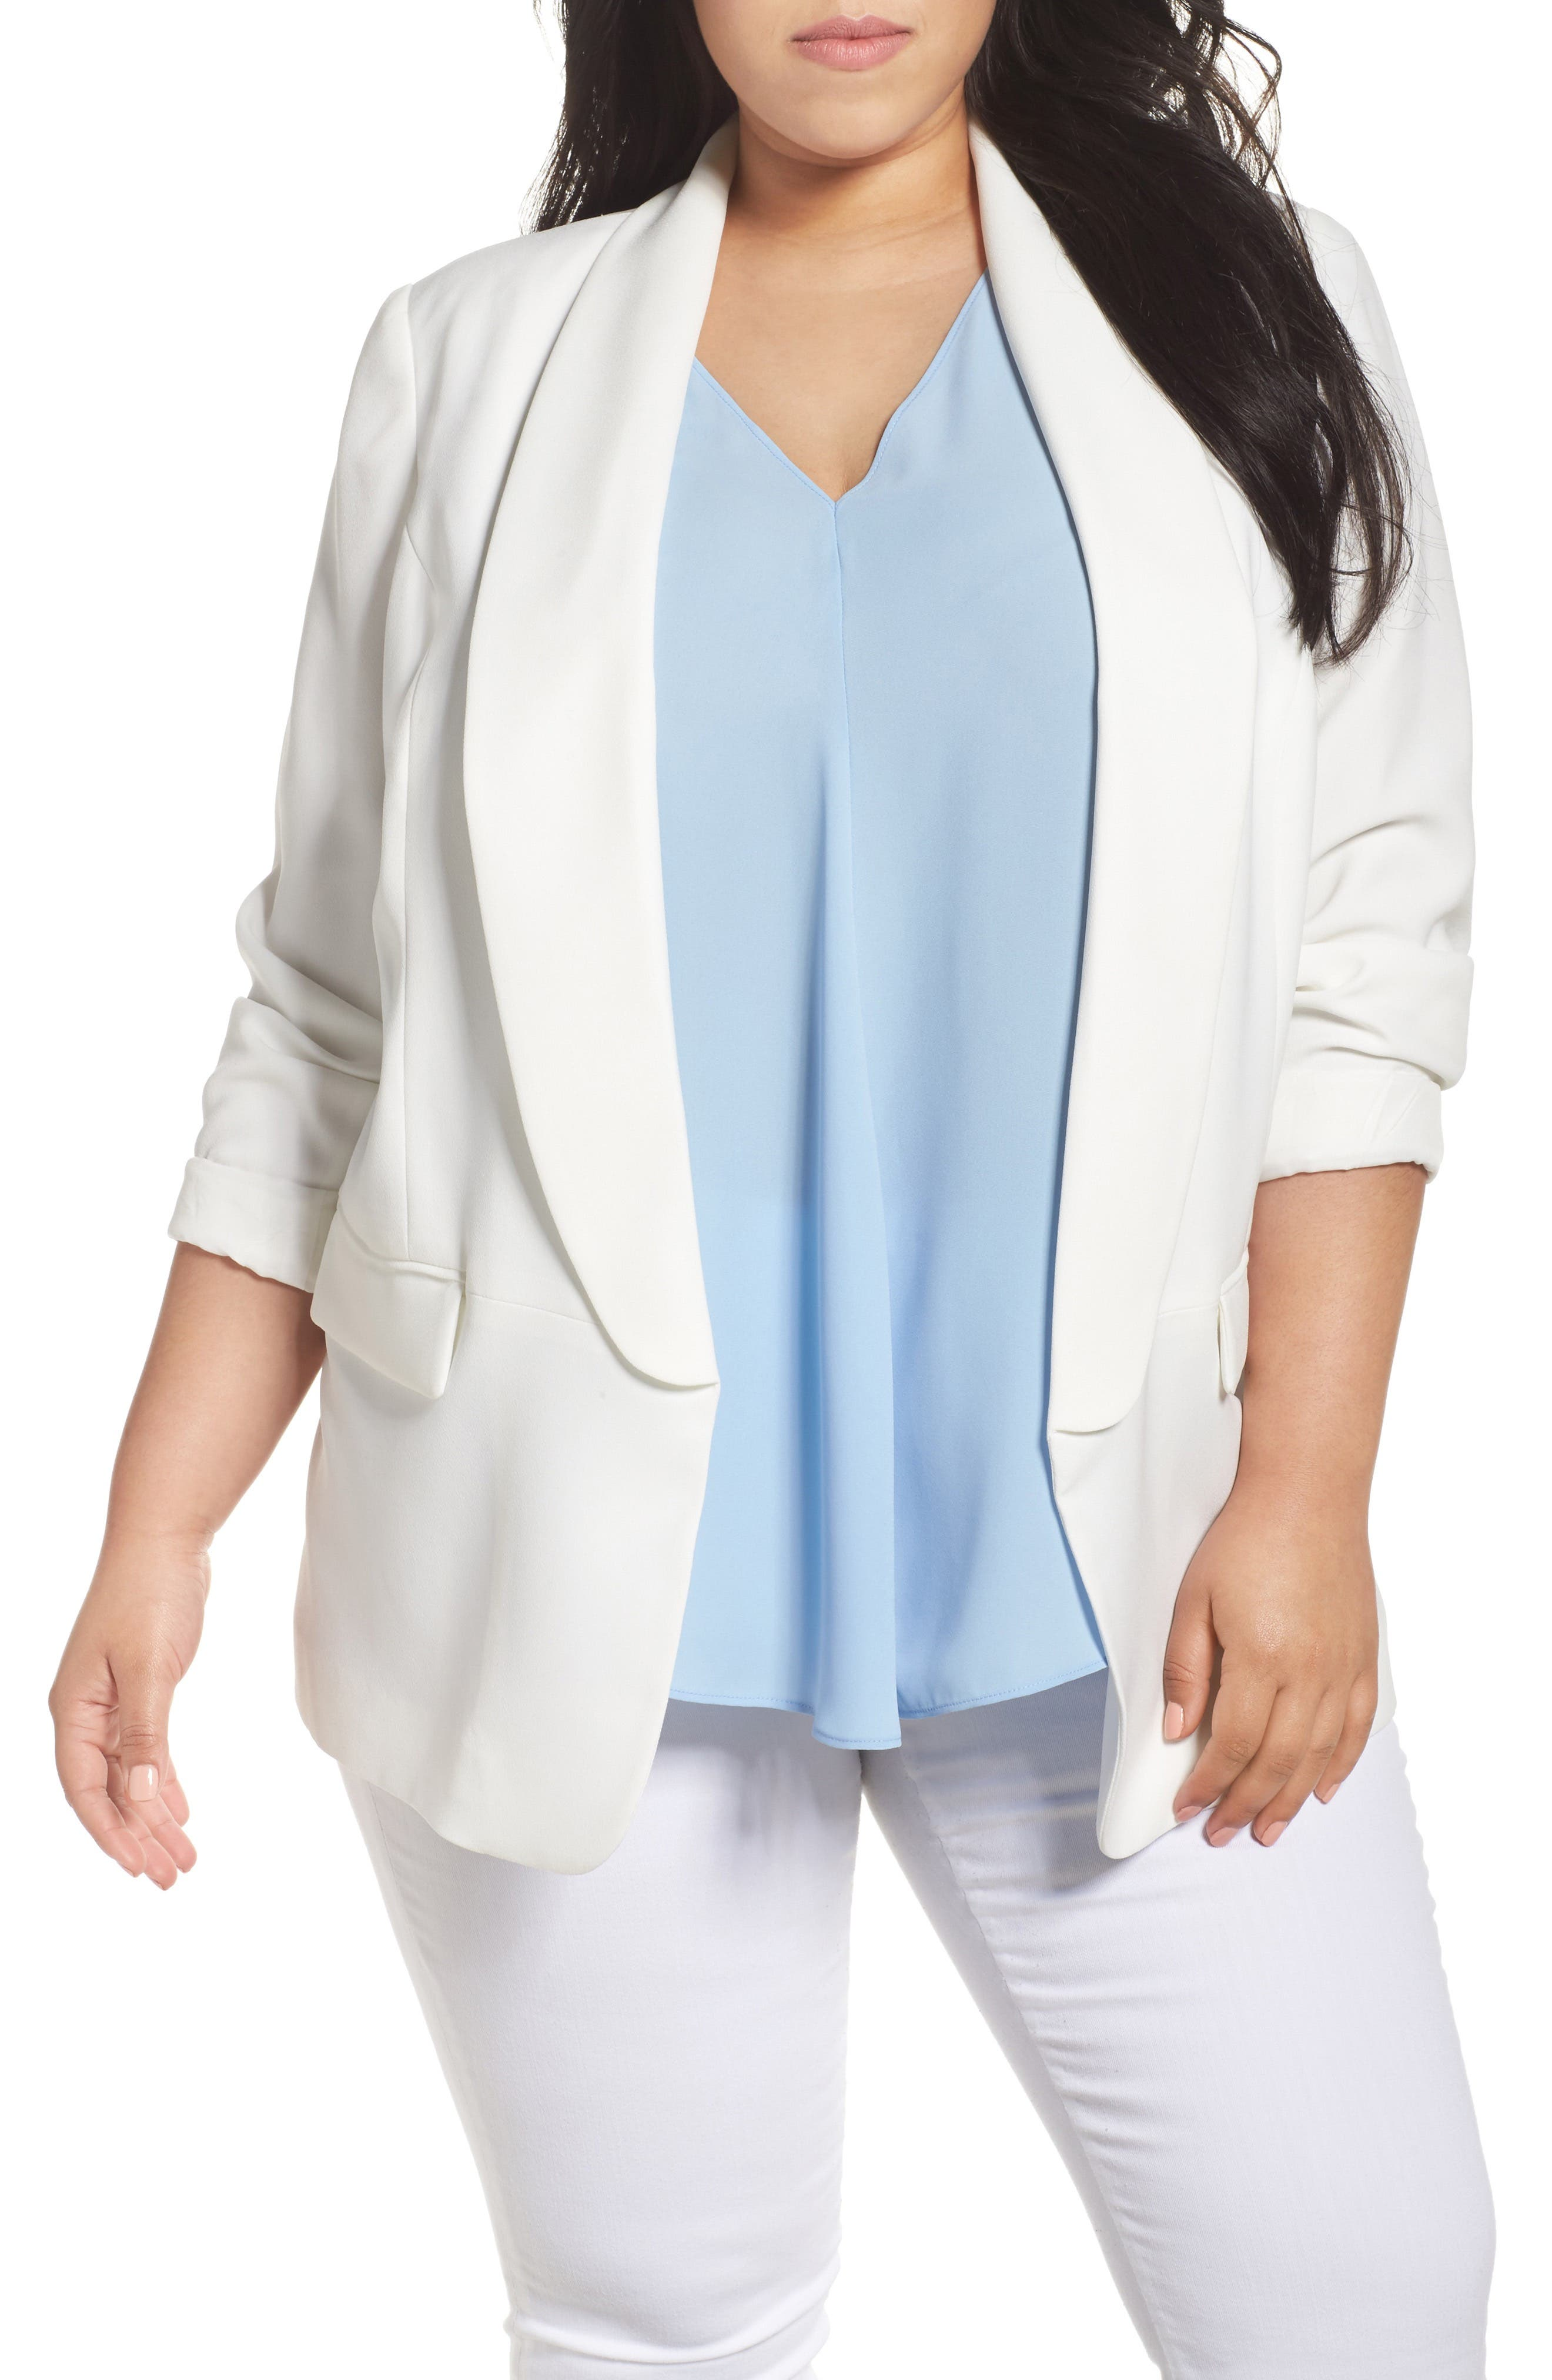 Alternate Image 1 Selected - Vince Camuto Open Front Blazer (Plus Size)